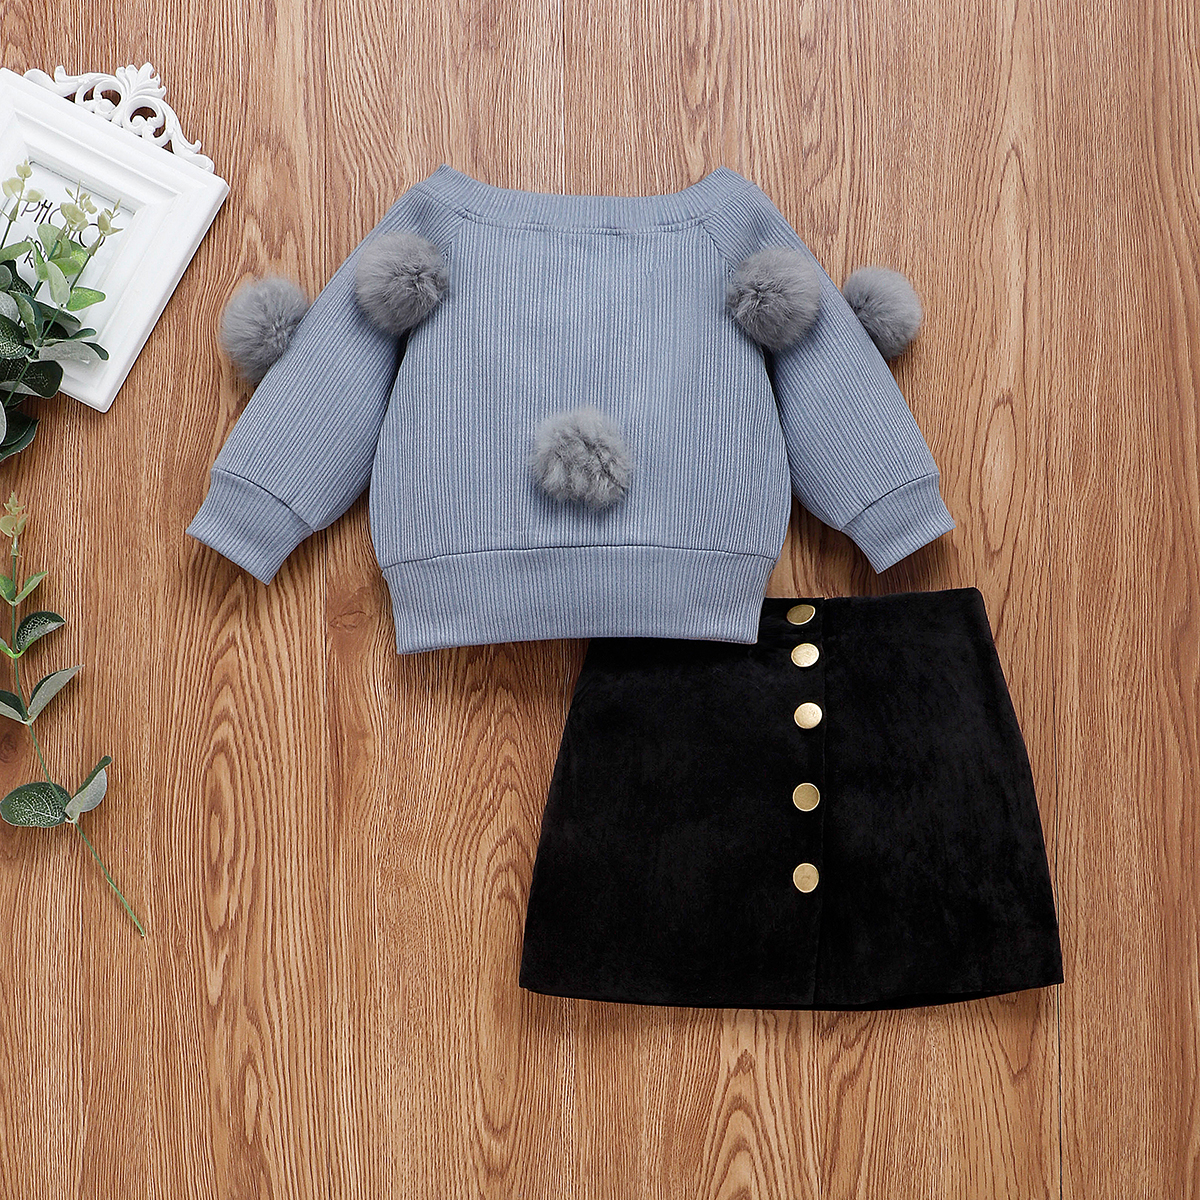 Top and Top Cute Toddler Baby Girls Hairball Sweater Cotton Long Sleeve Knitted Pullover Top